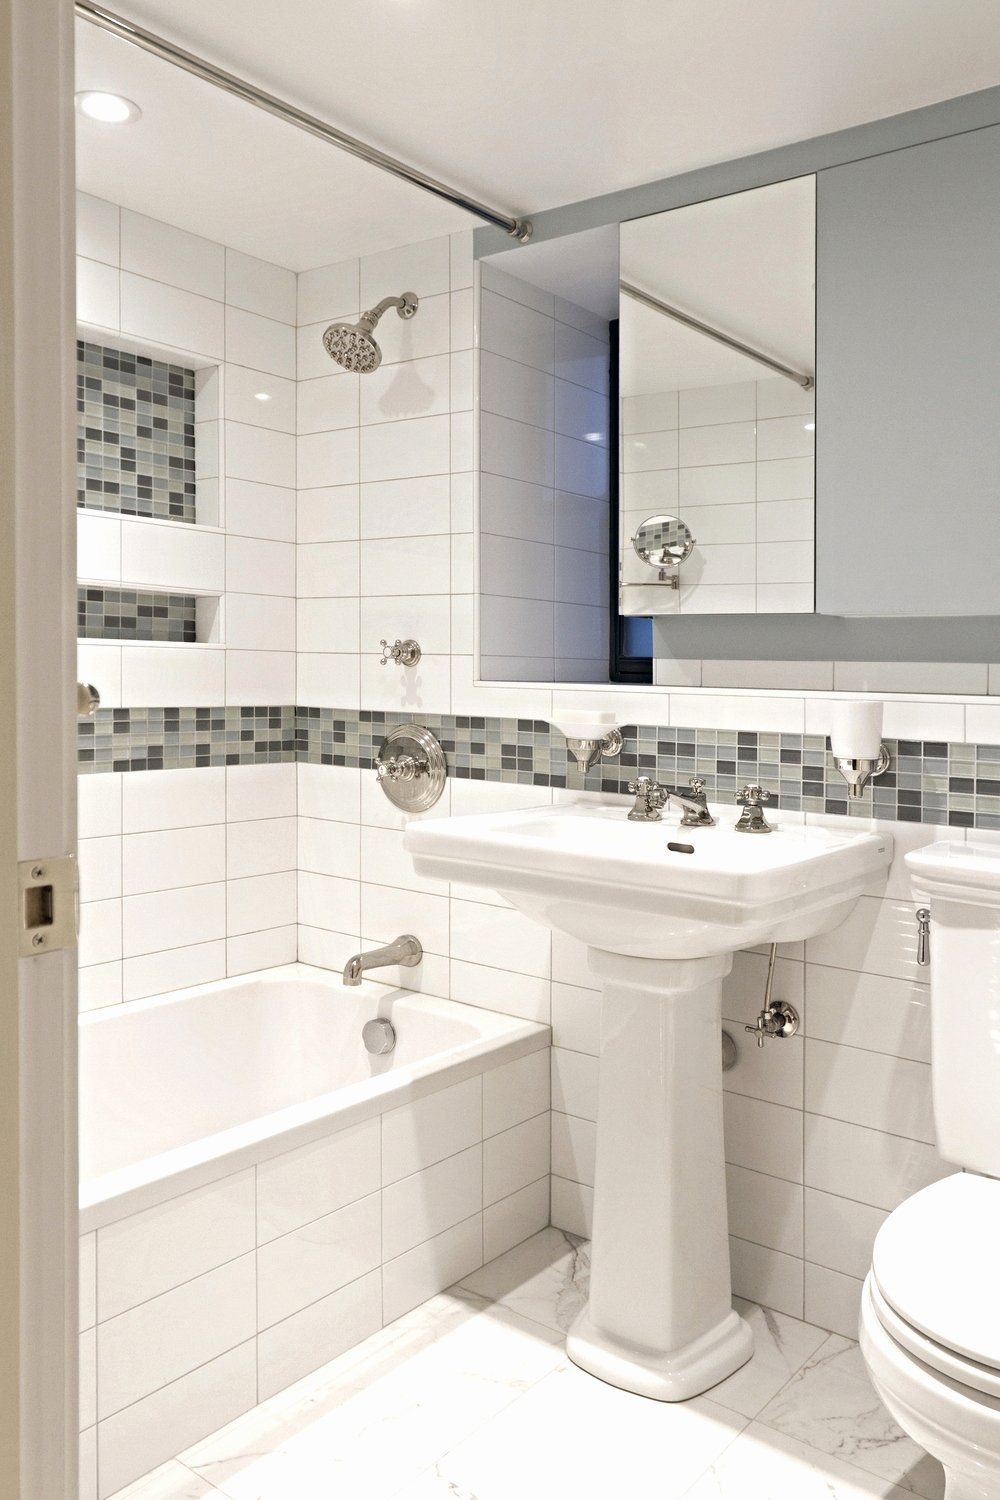 Pin On Bathroom With Separate Room Ideas